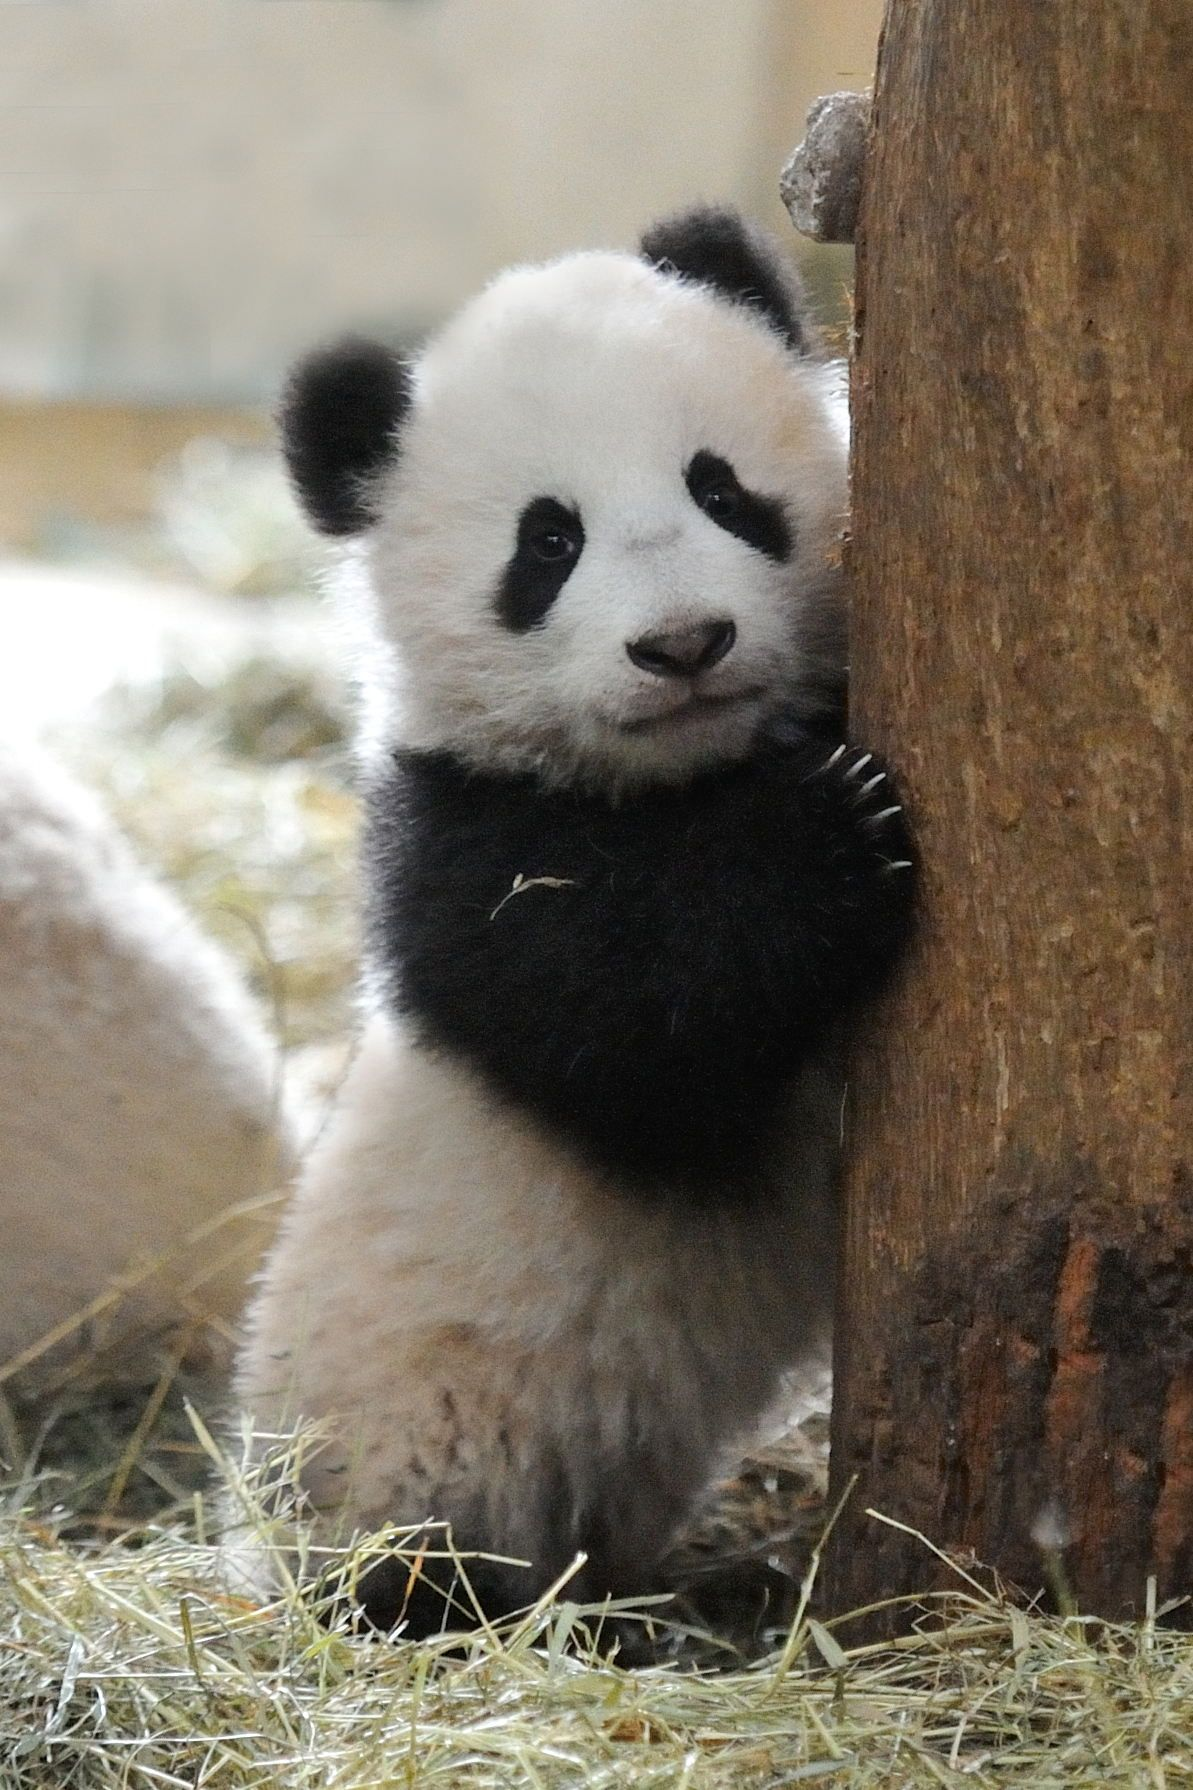 Little panda: a beautiful animal that is dying out 27